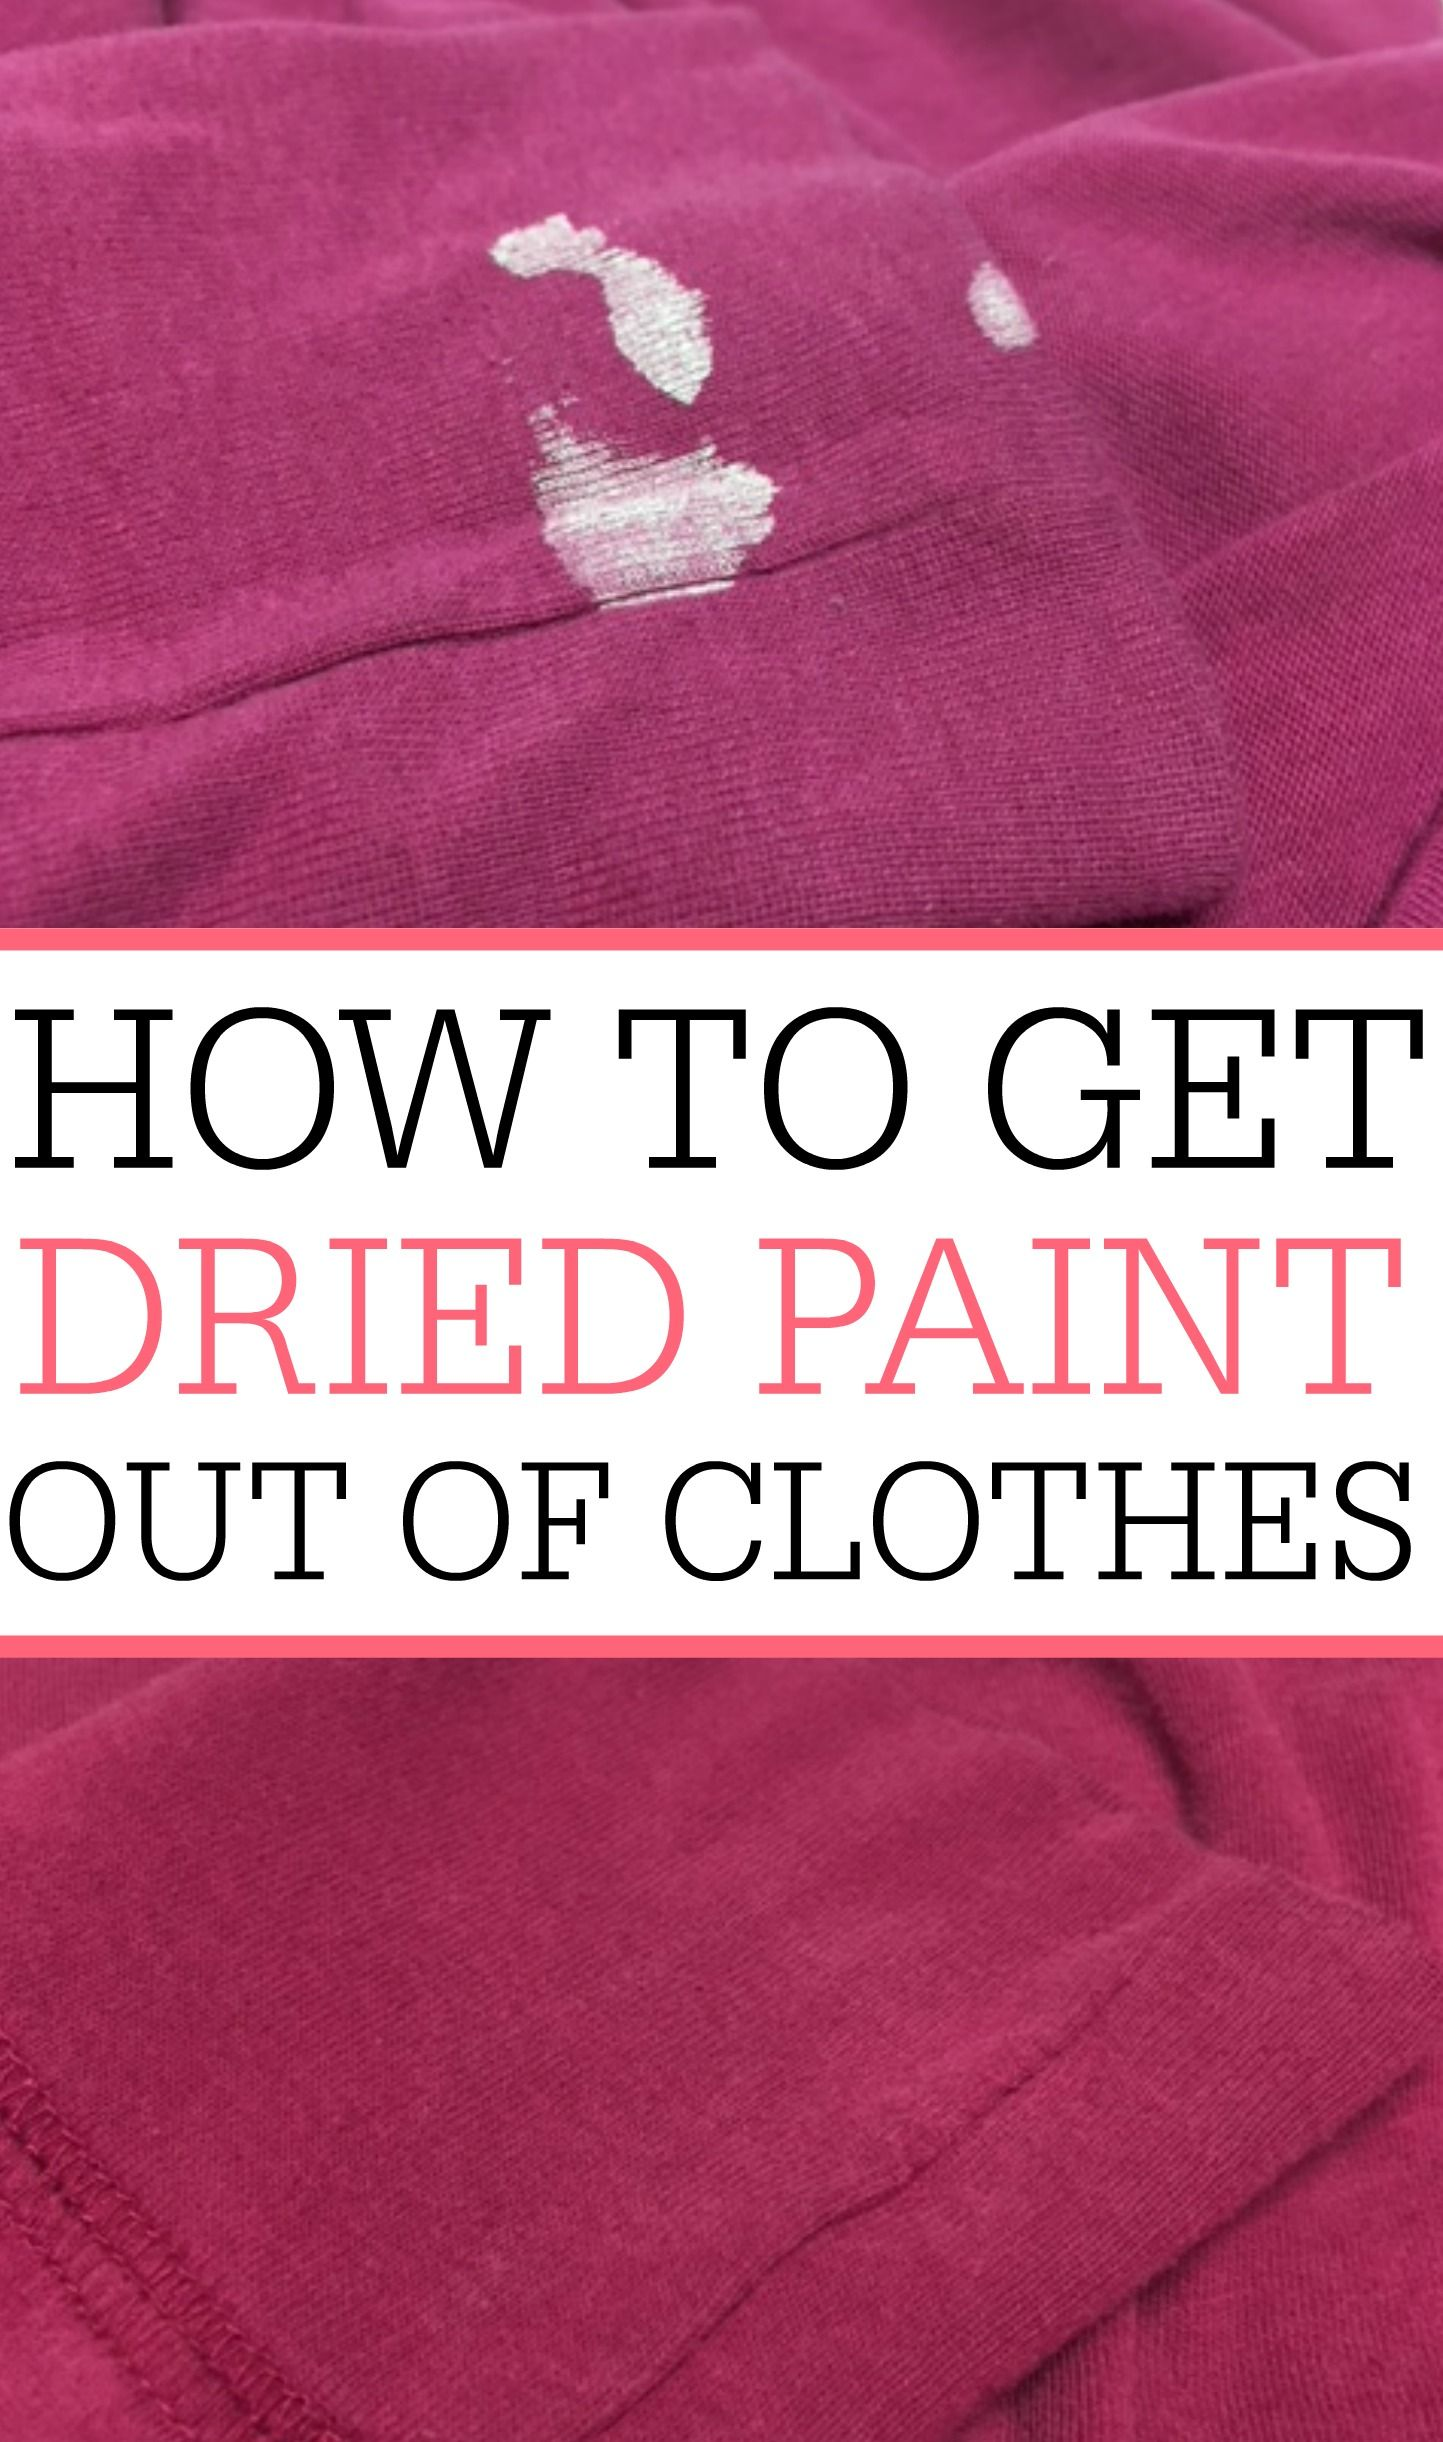 How To Get Dried Paint Out Of Clothes Cleaning Hacks House Cleaning Tips Diy Cleaning Products